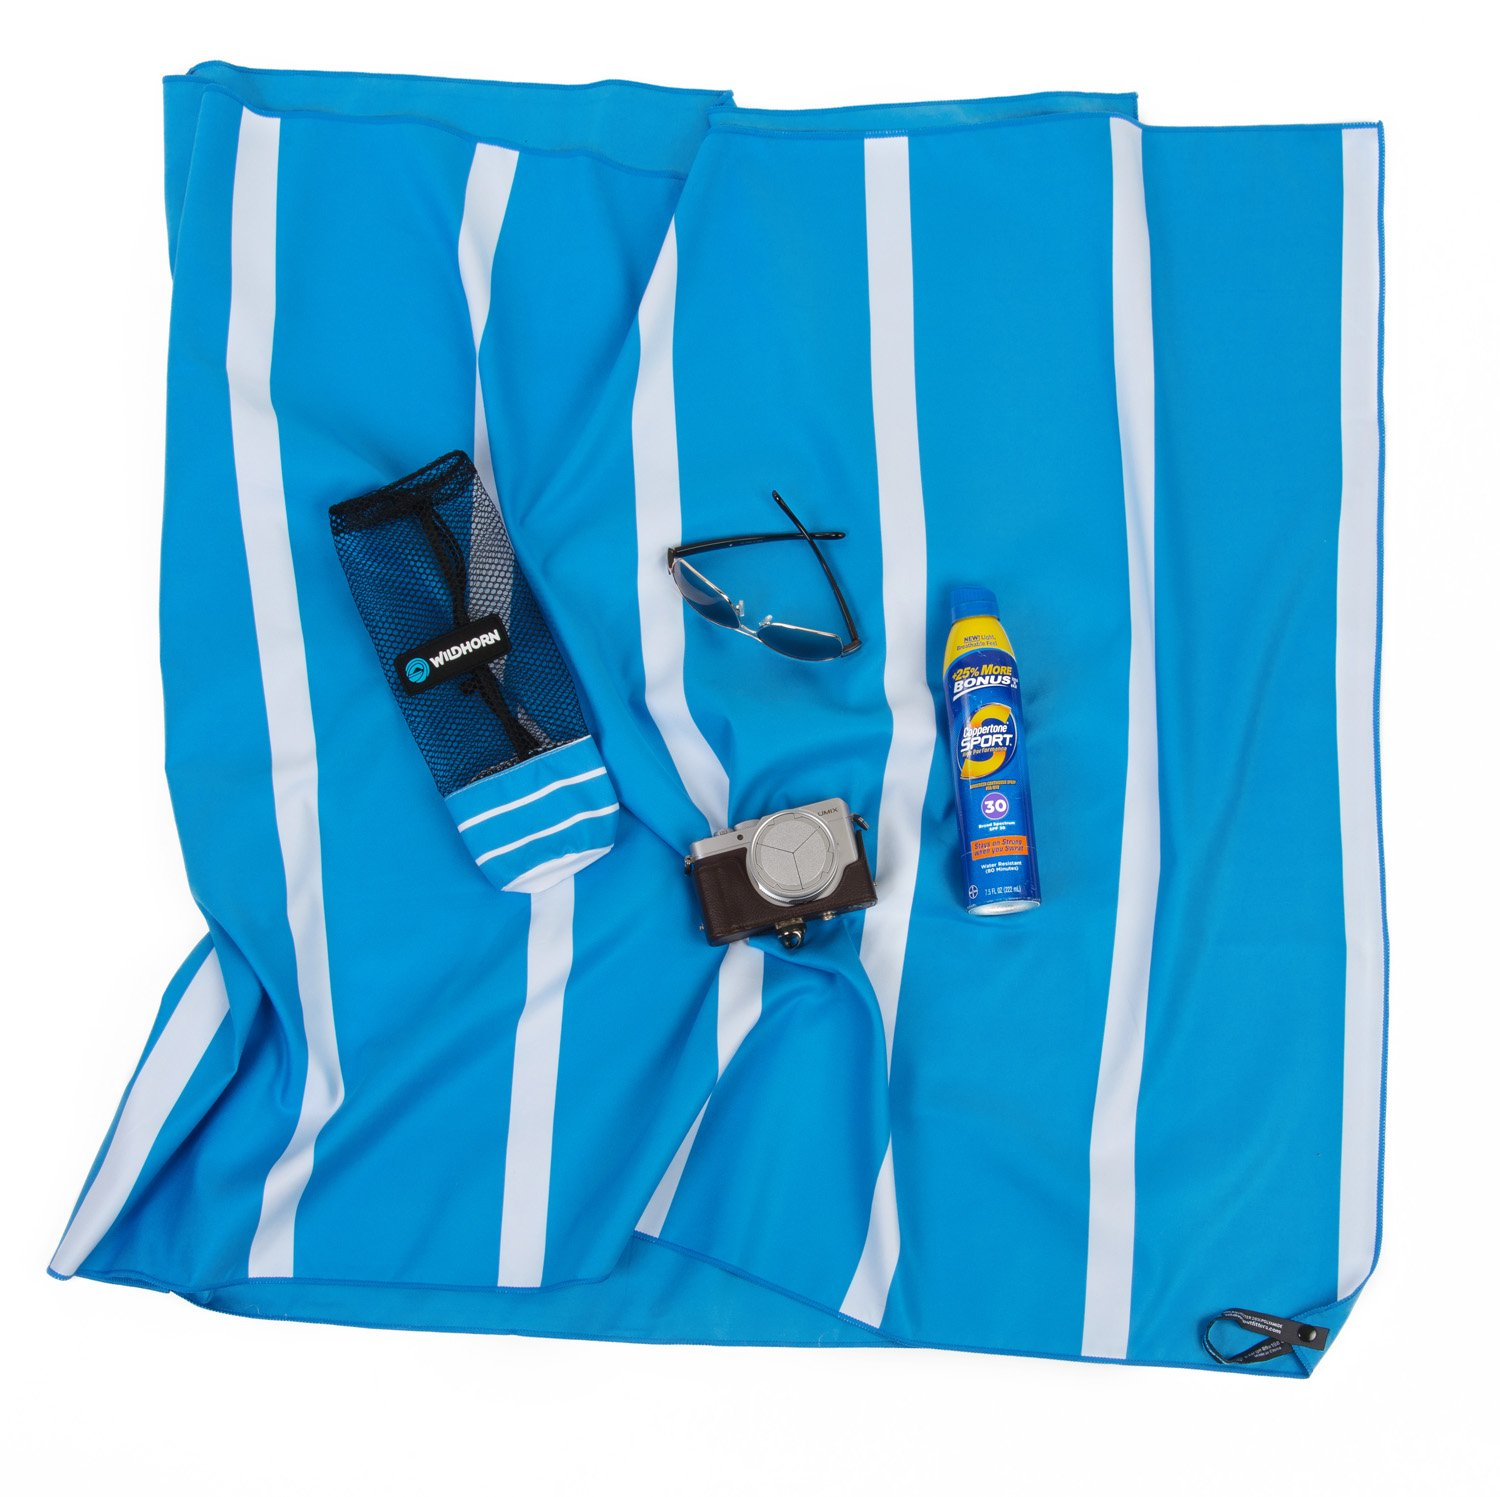 Great for beach trips 78 in. x35 in. pool Akumal Microfiber Beach Towel and camping Quick dry travel towel ultra compact Travels better than cotton beach towels WildHorn Outfitters extra absorbent and XL size